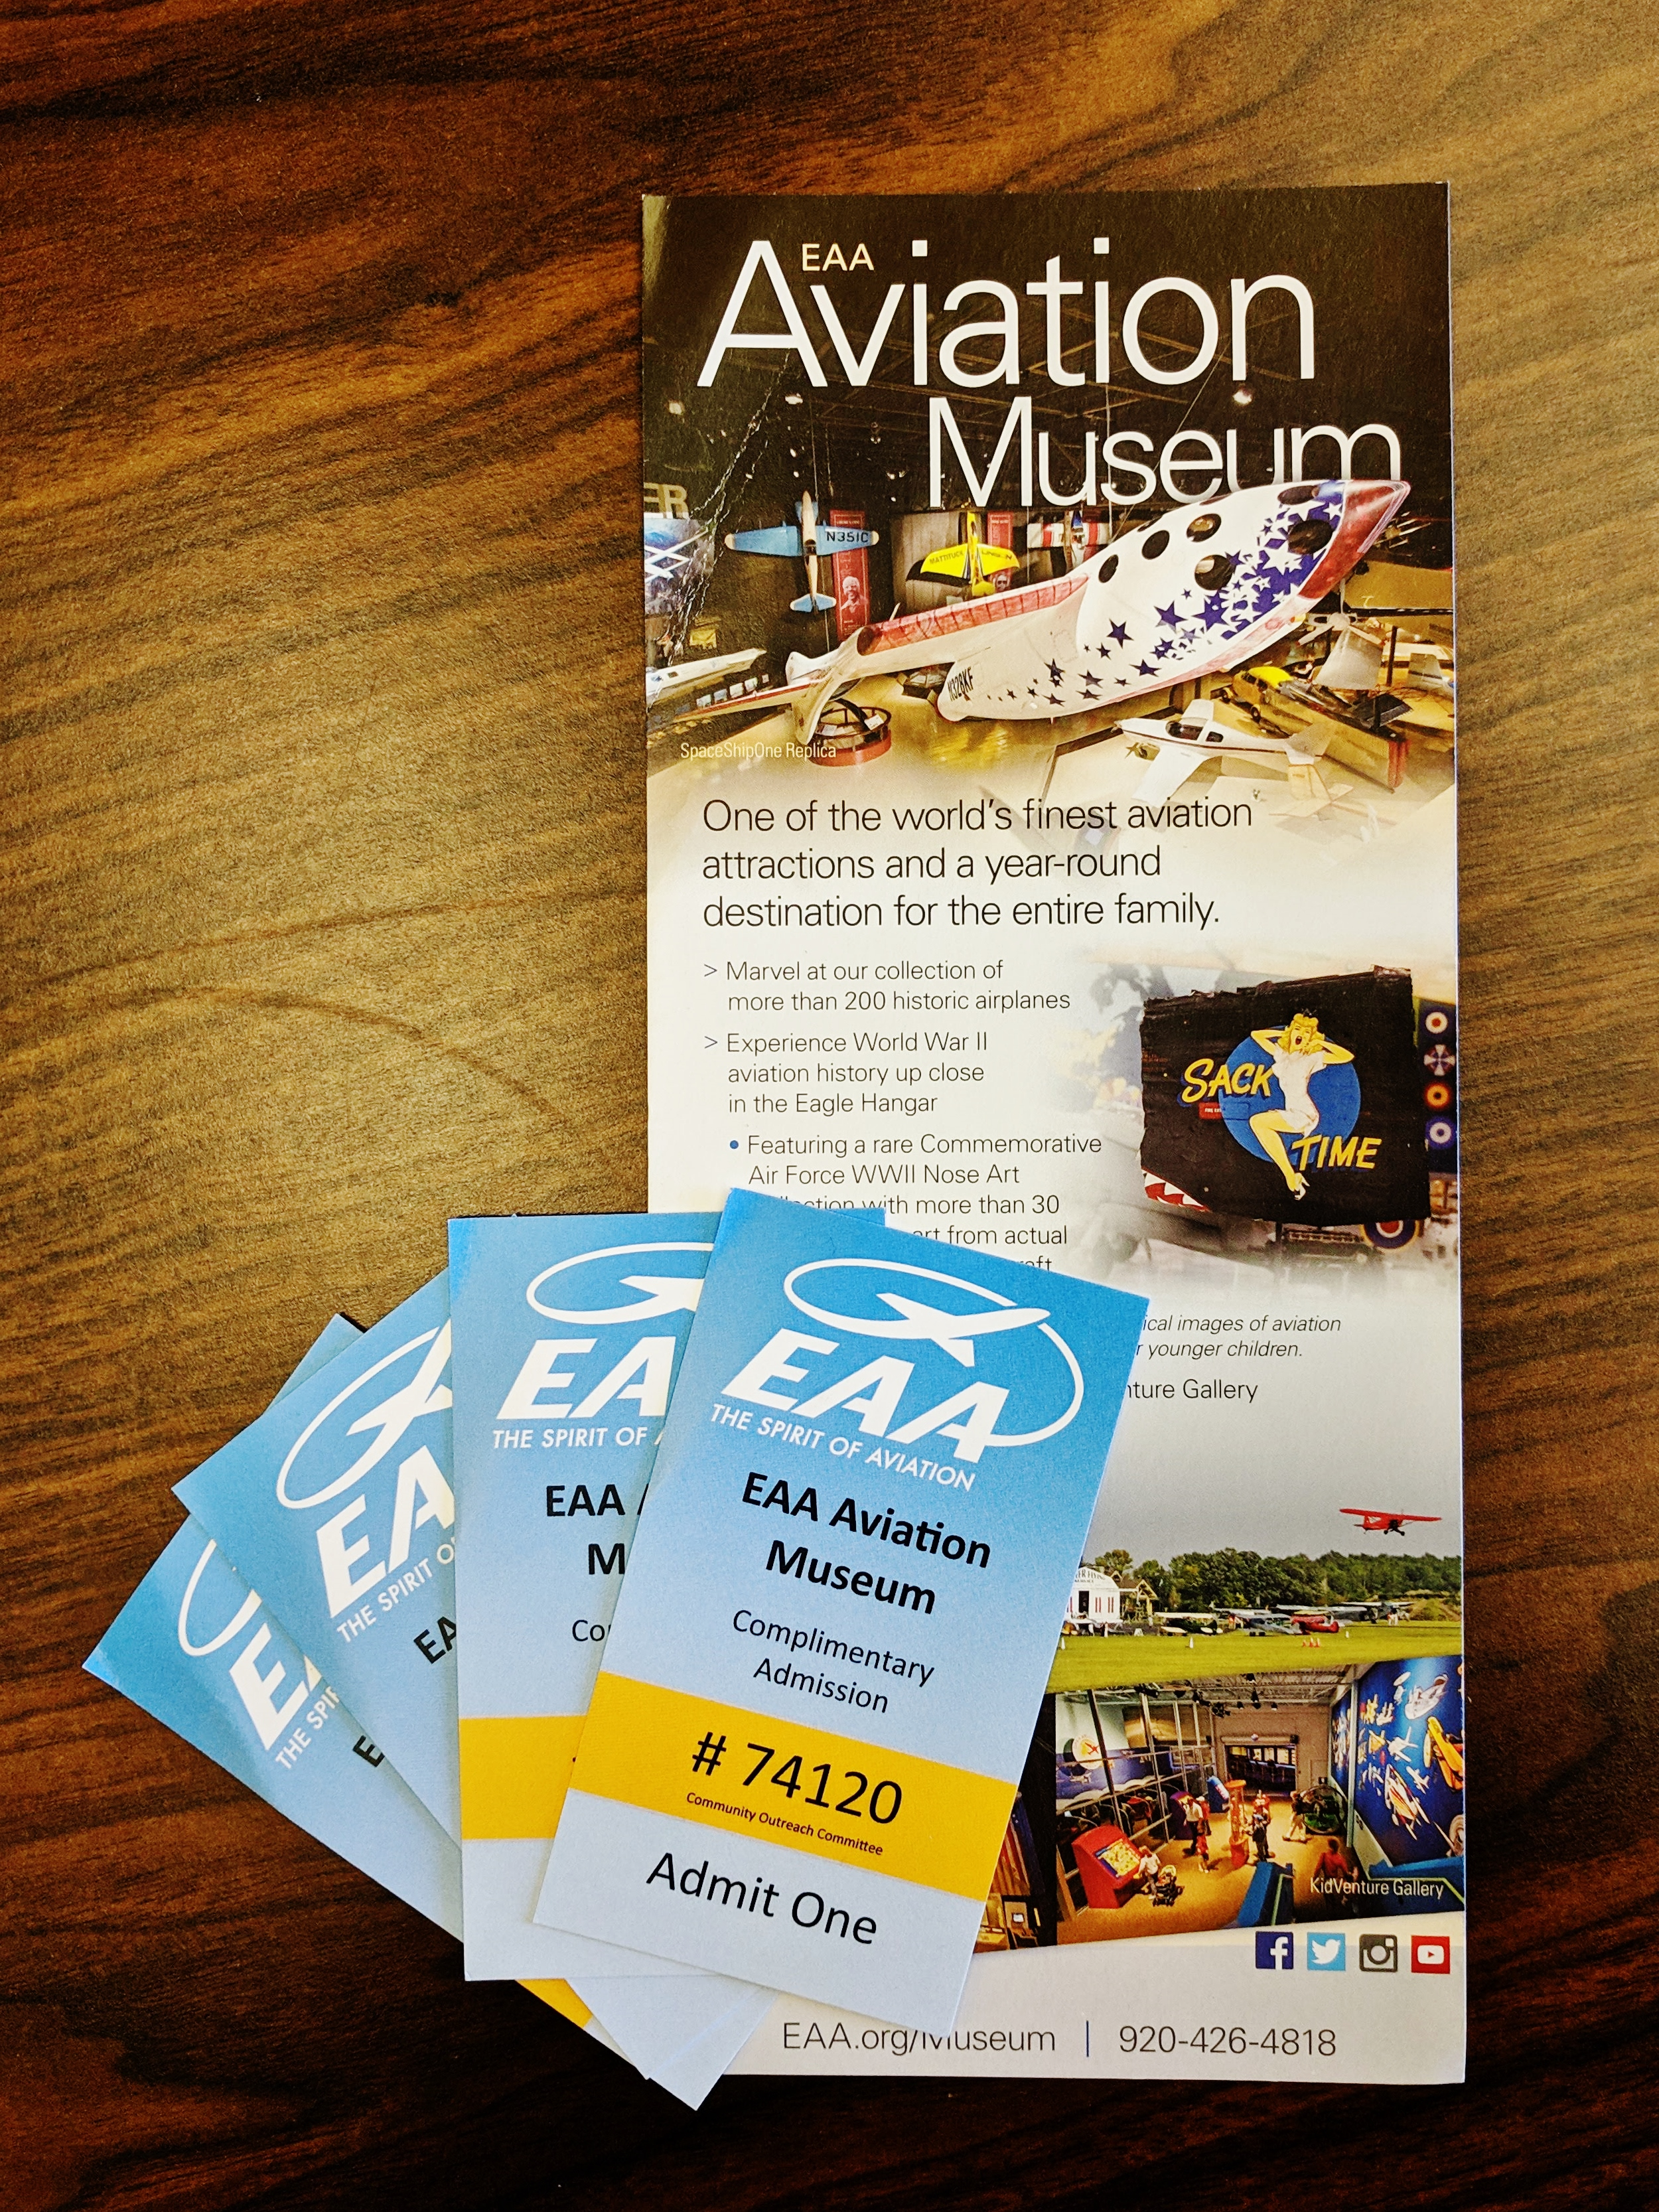 Admission for Four to the Experimental Aircraft Association (EAA) Aviation Museum in Oshkosh, WI